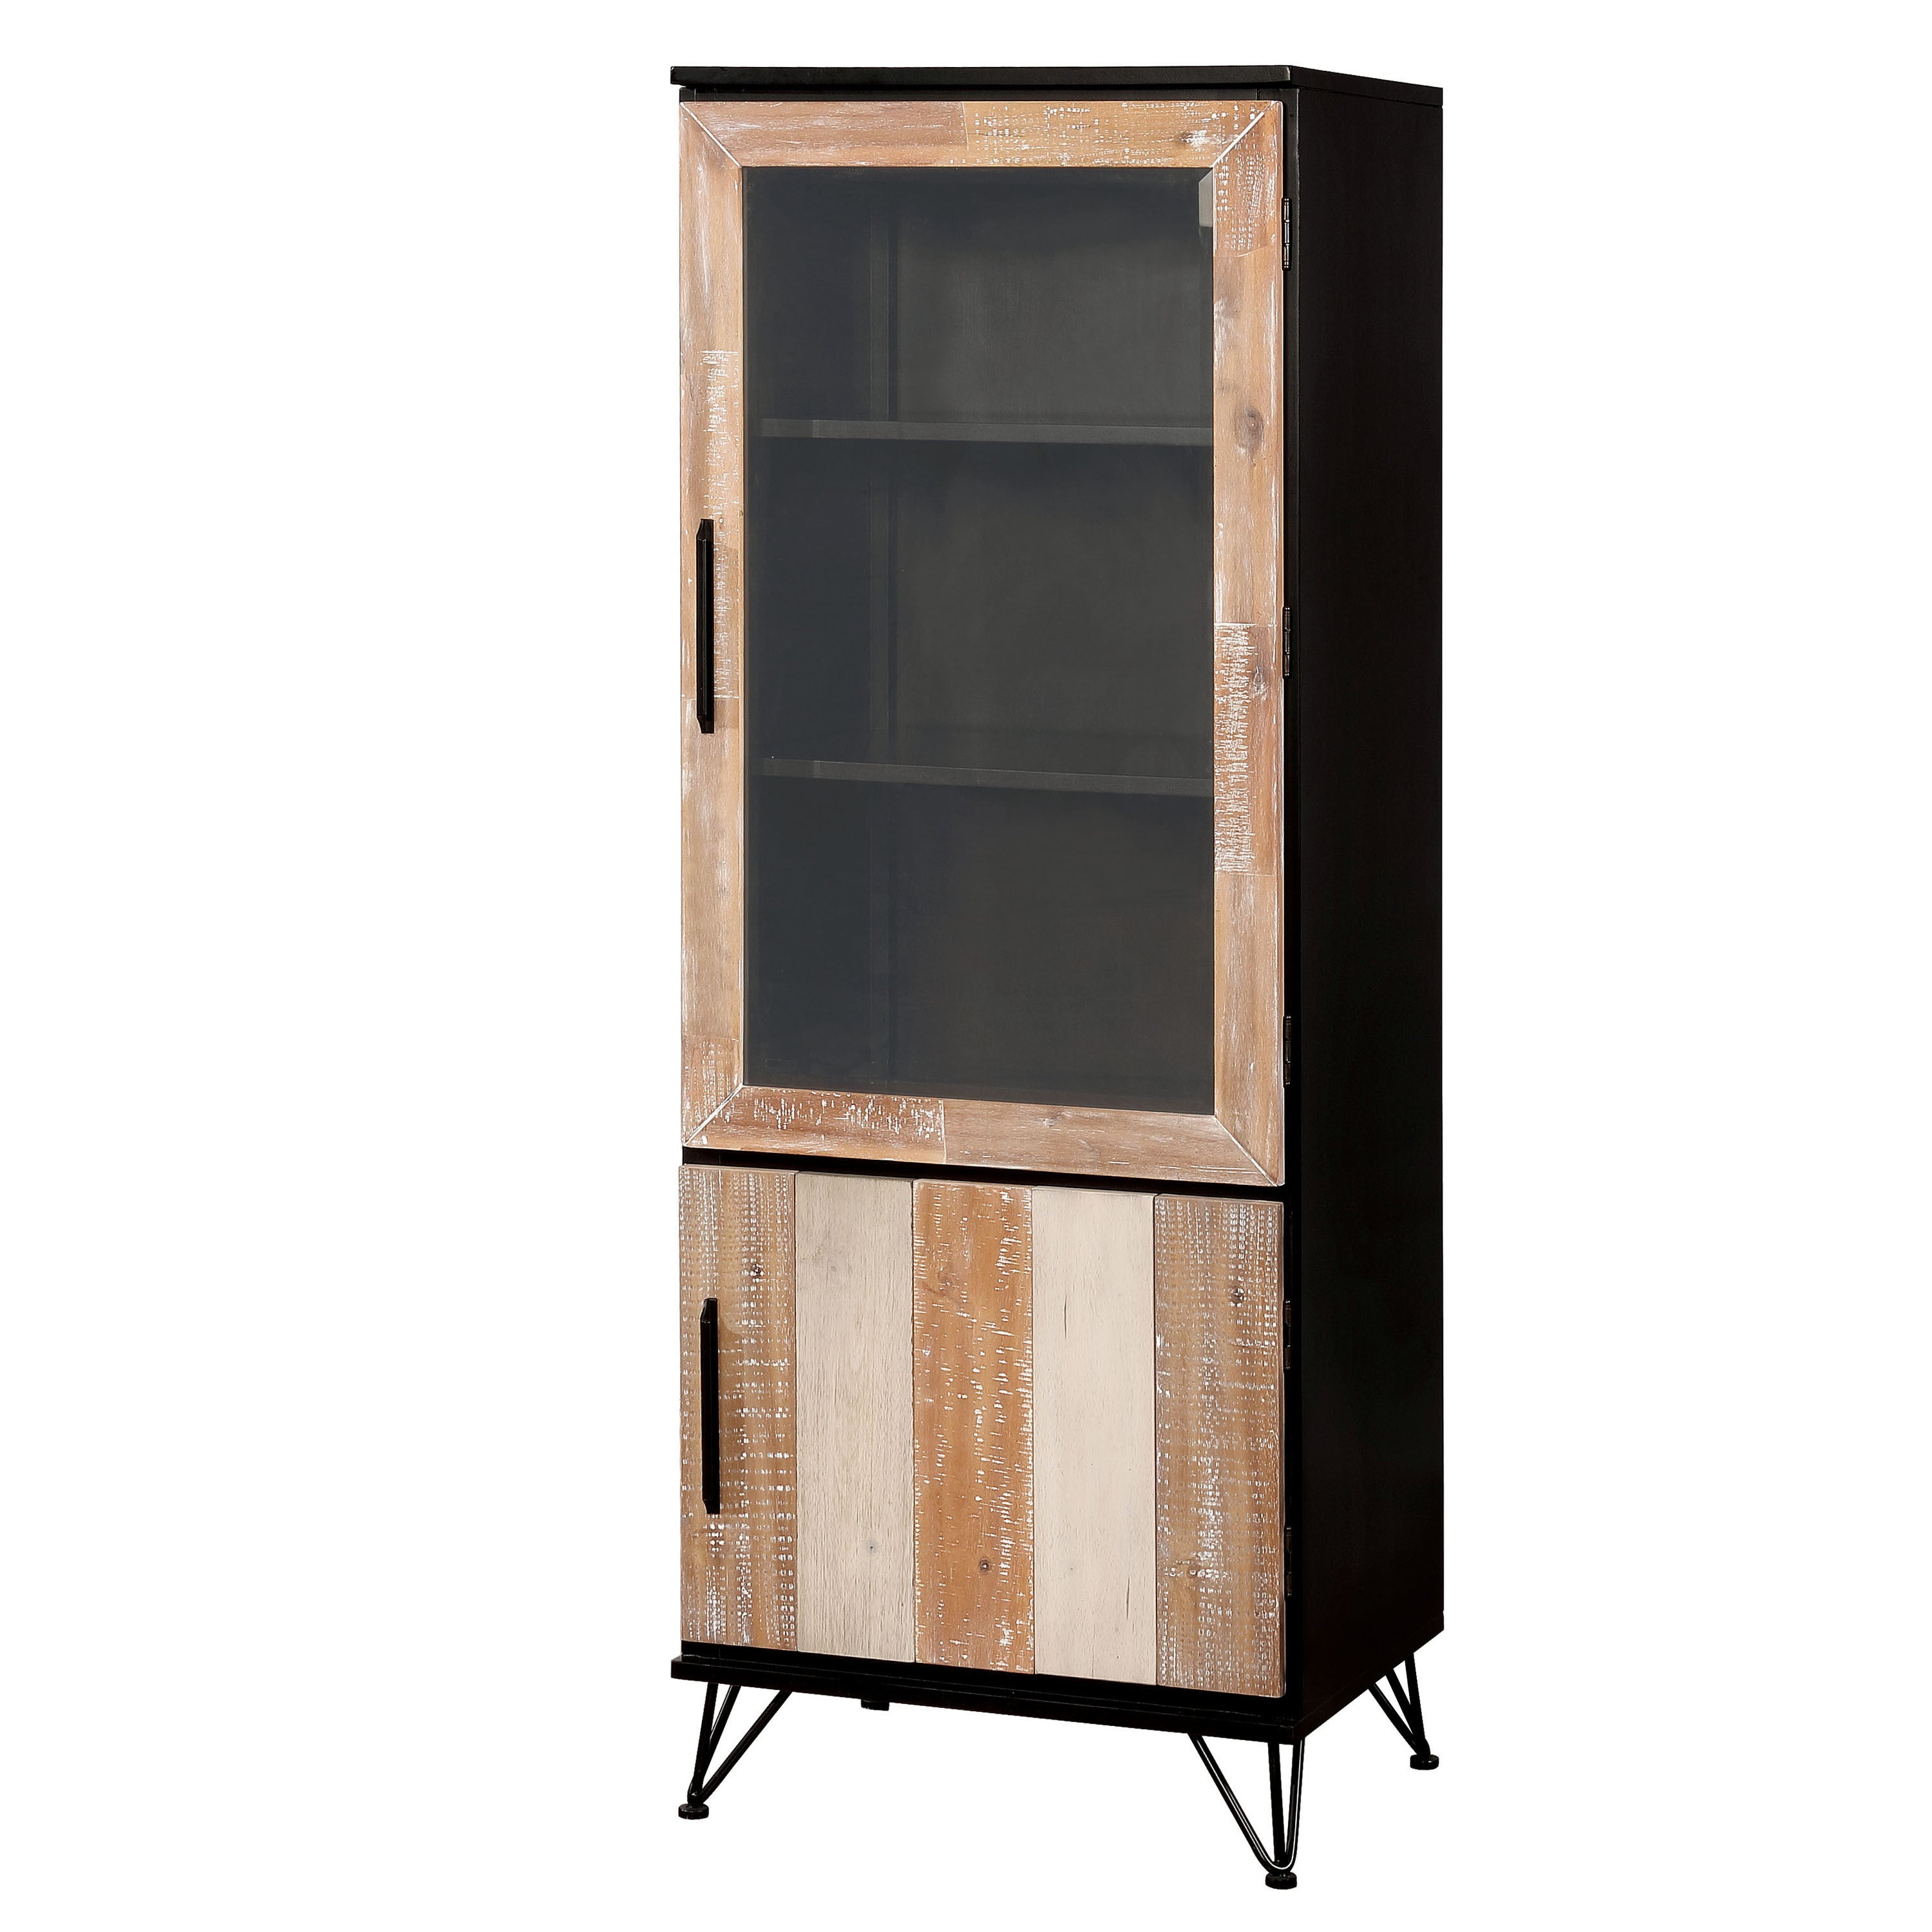 Attractive Furniture Of America Freddie Contemporary Sawblade Style 2 Door Pier  Cabinet   Free Shipping Today   Overstock   25701529